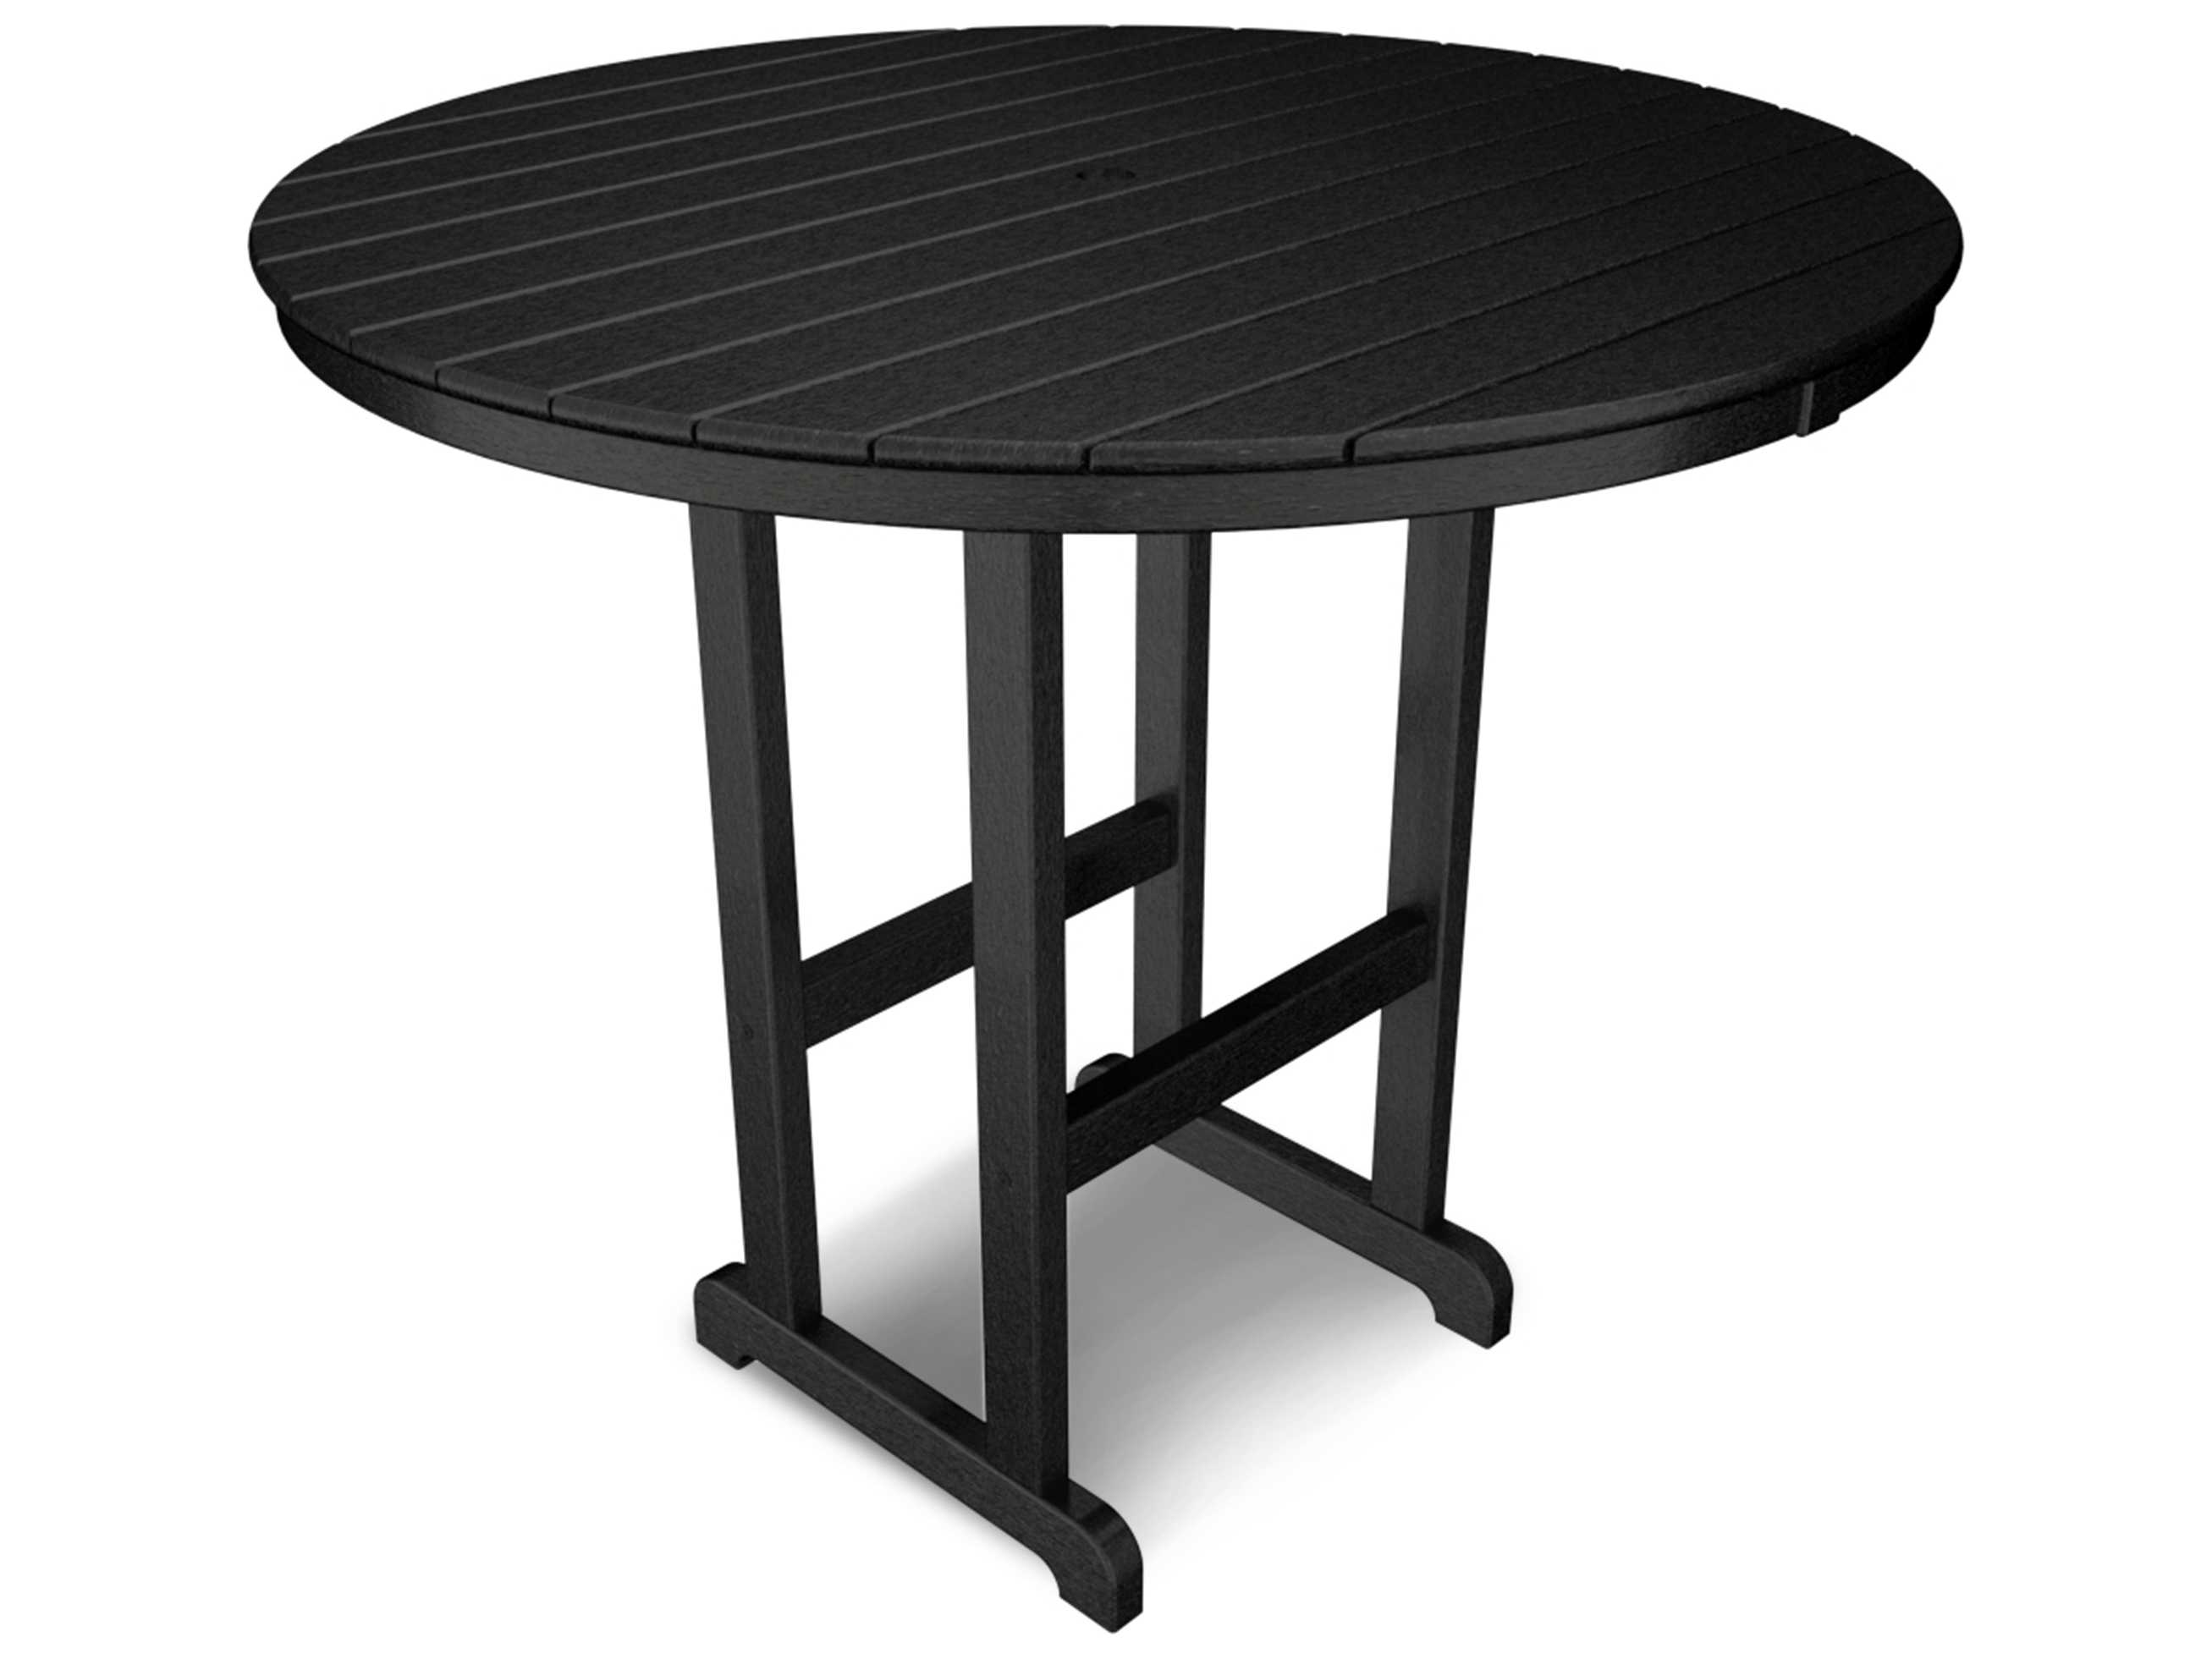 polywood traditional recycled plastic 48 round bar height table pwrbt248. Black Bedroom Furniture Sets. Home Design Ideas